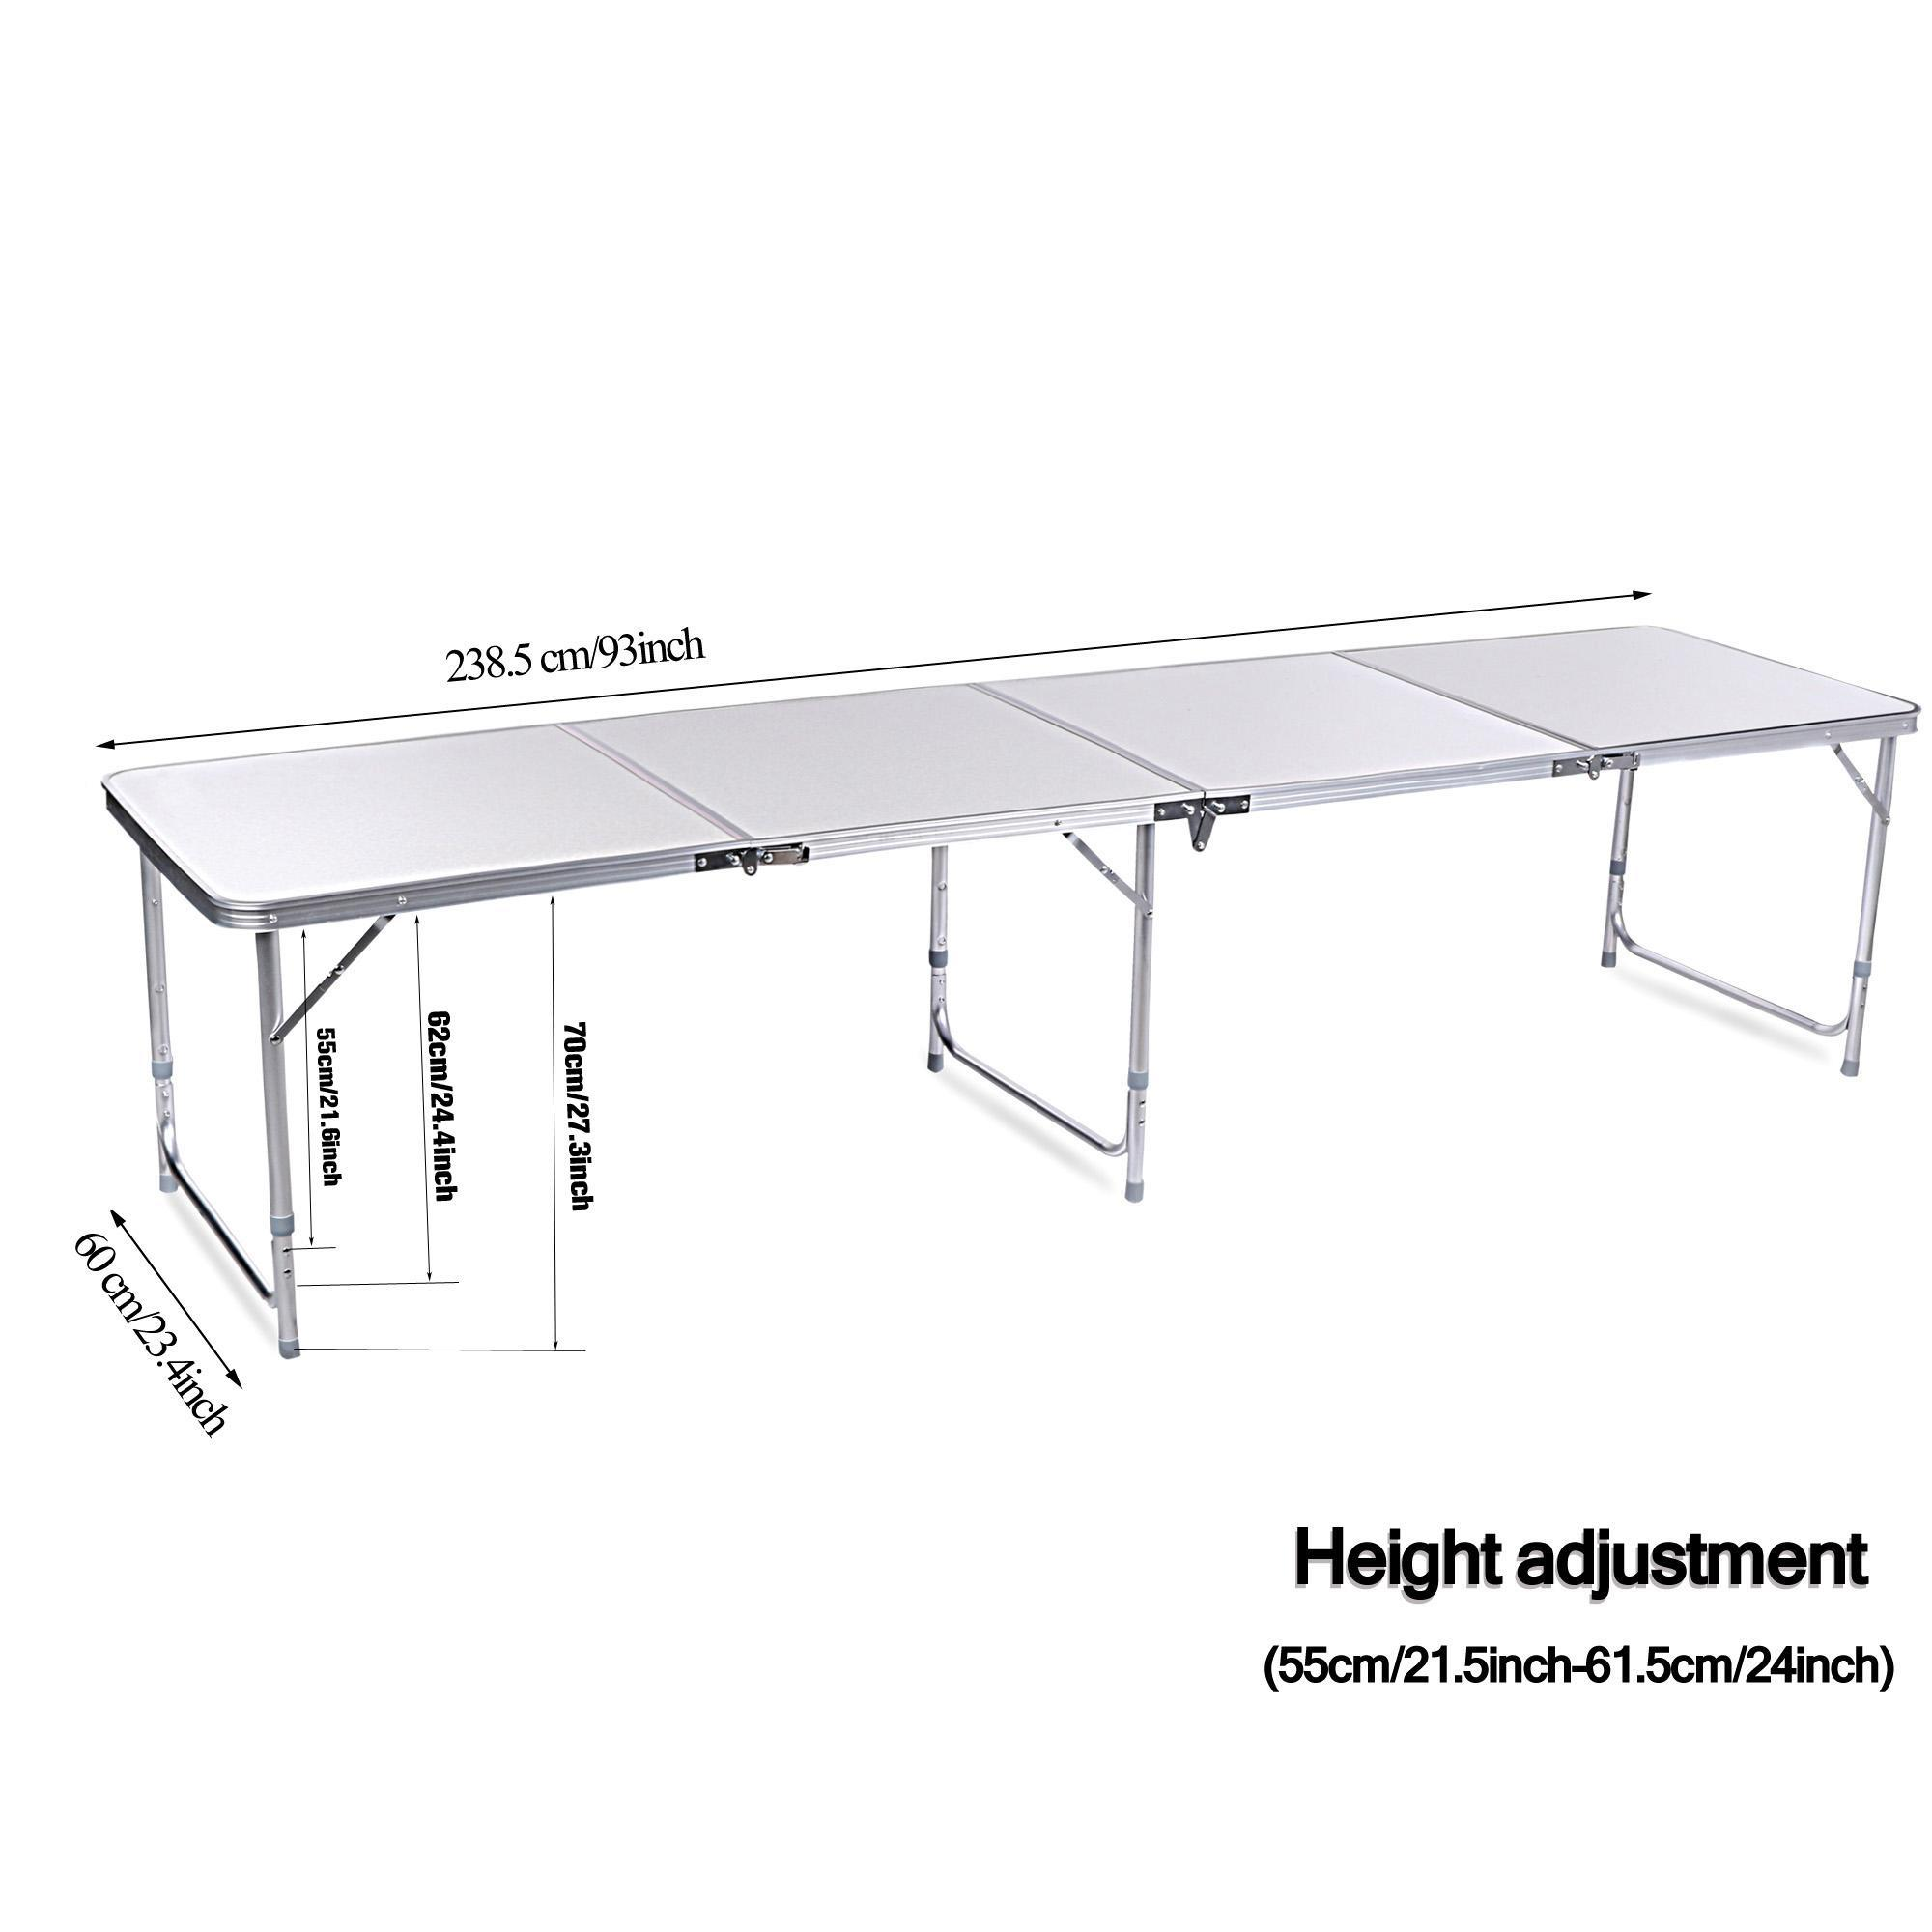 Aluminum 4 In 1 Folding Portable Extension Square Picnic Camping Table Carrying Handle 3